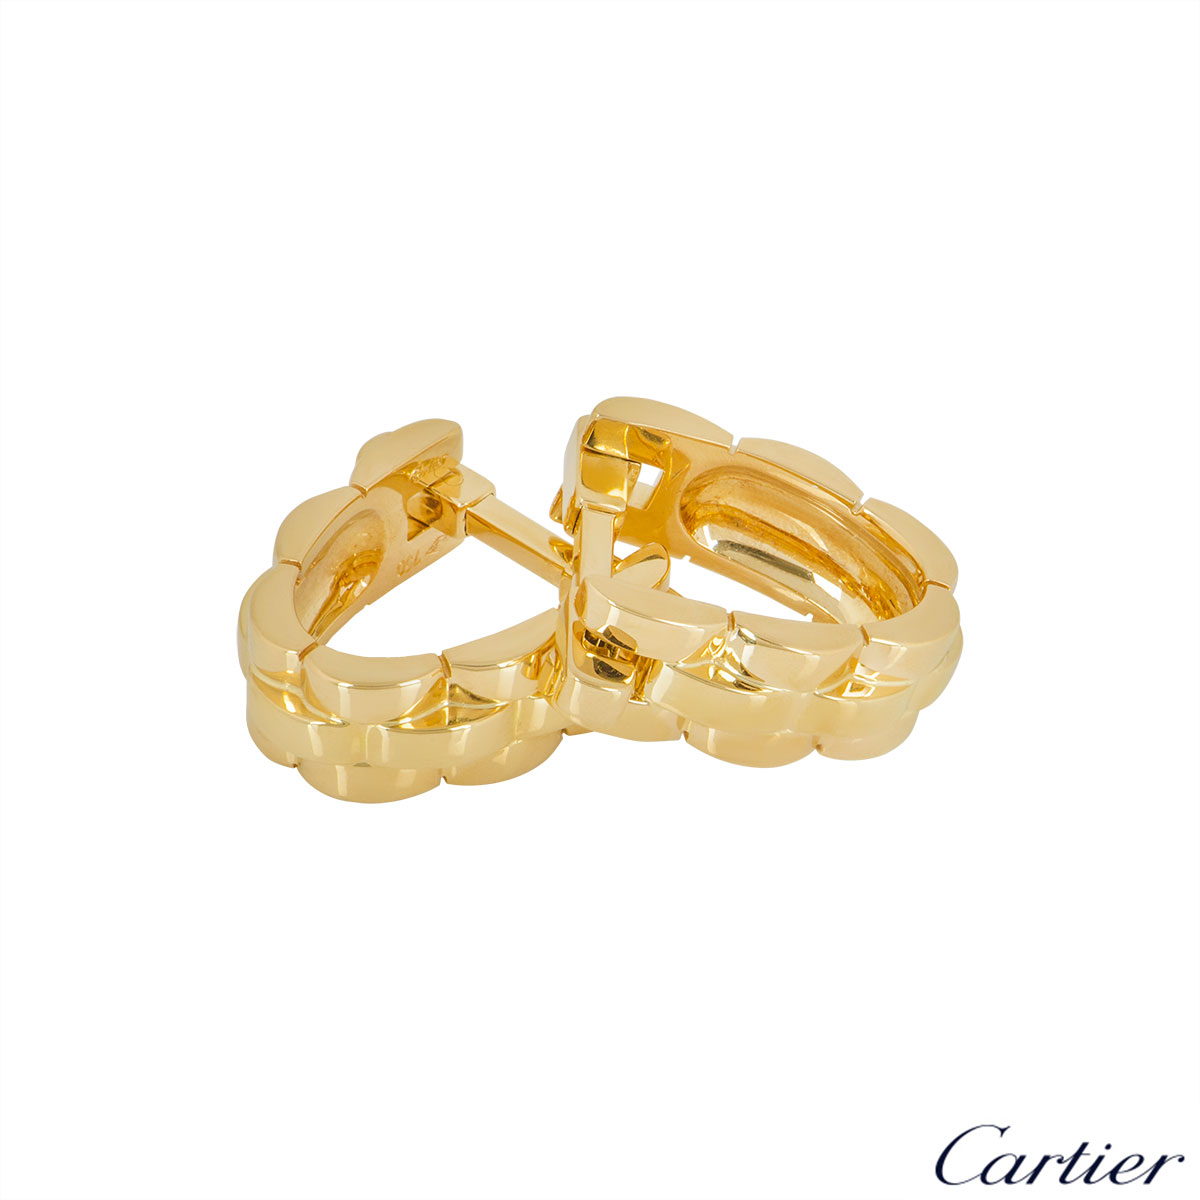 Cartier Yellow Gold Maillon Panthere Cufflinks